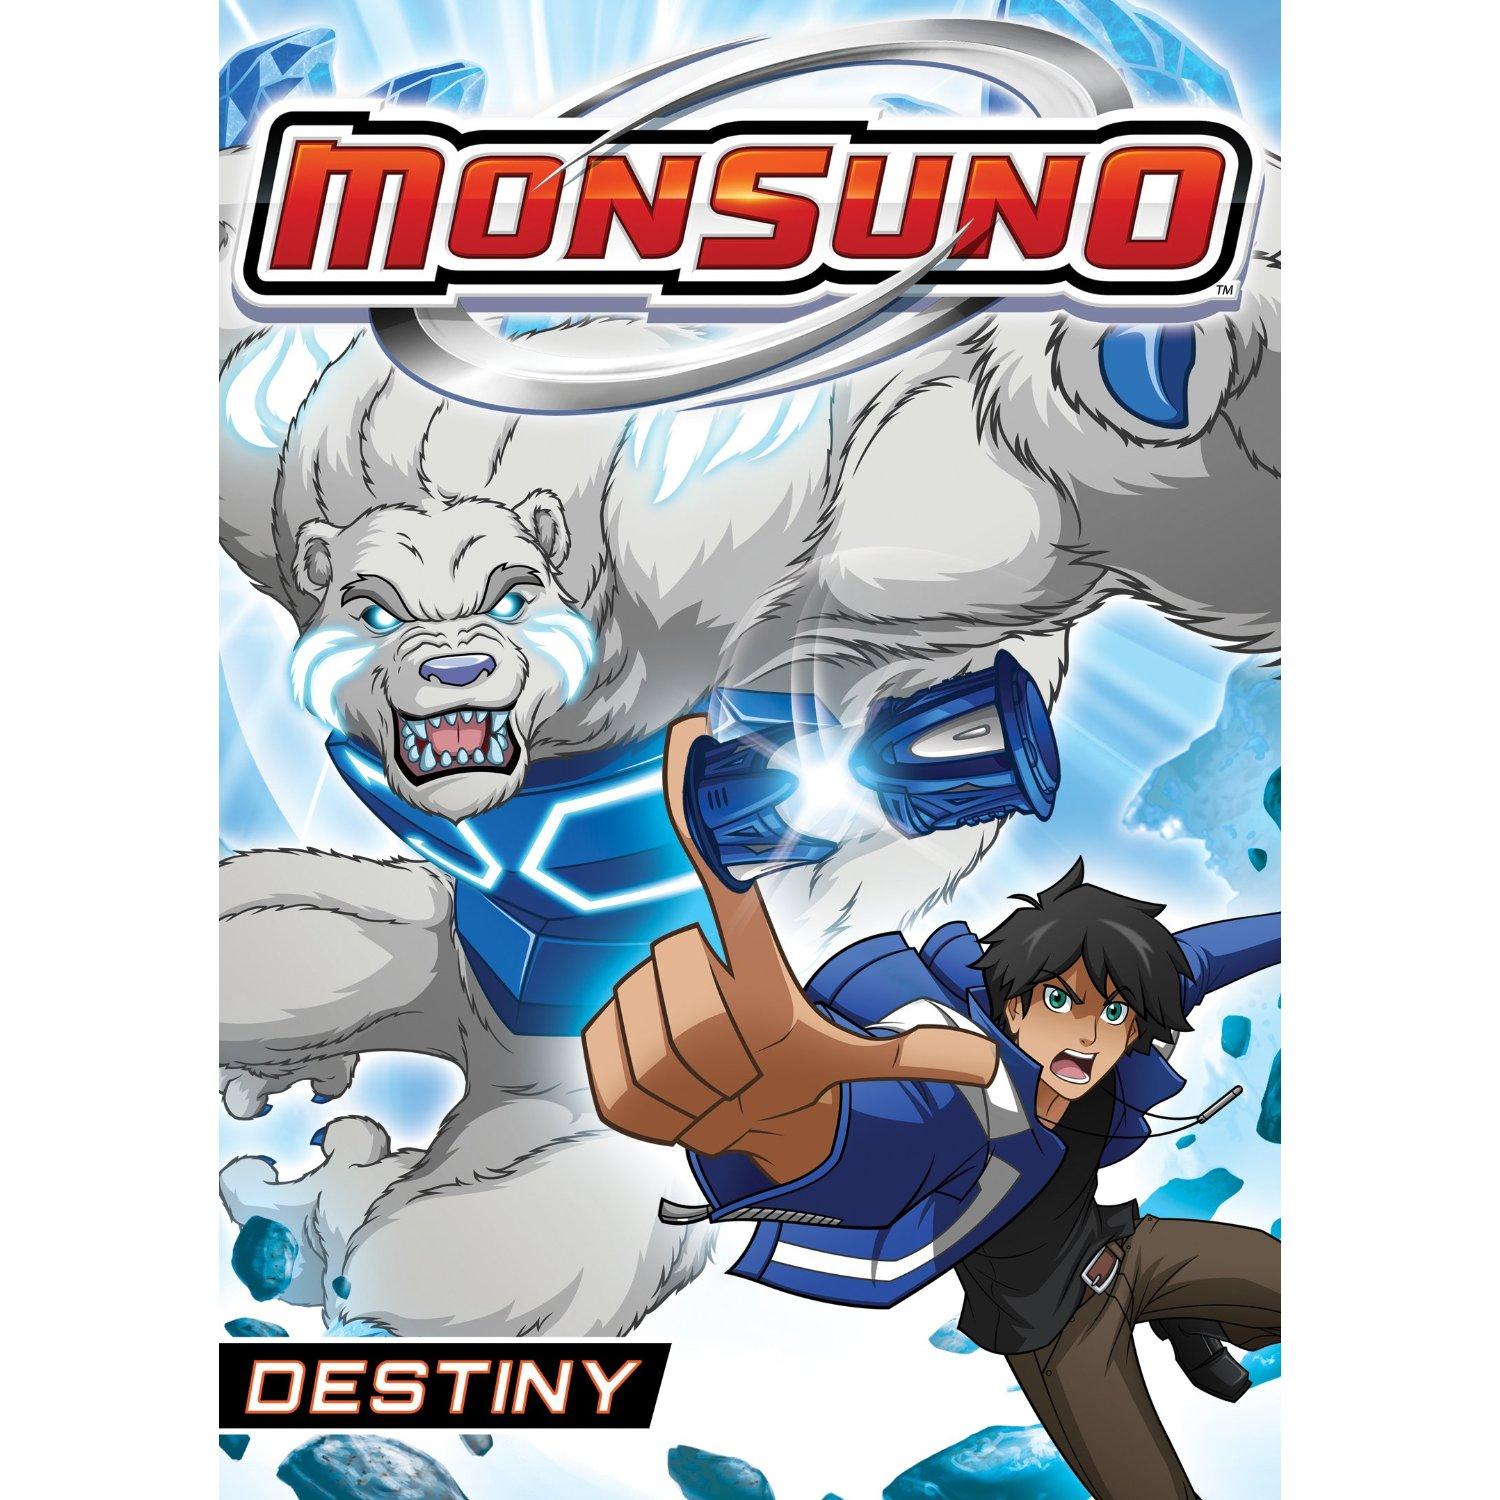 Abce2/Monsuno Season 2 now (possibly) has a name. :D